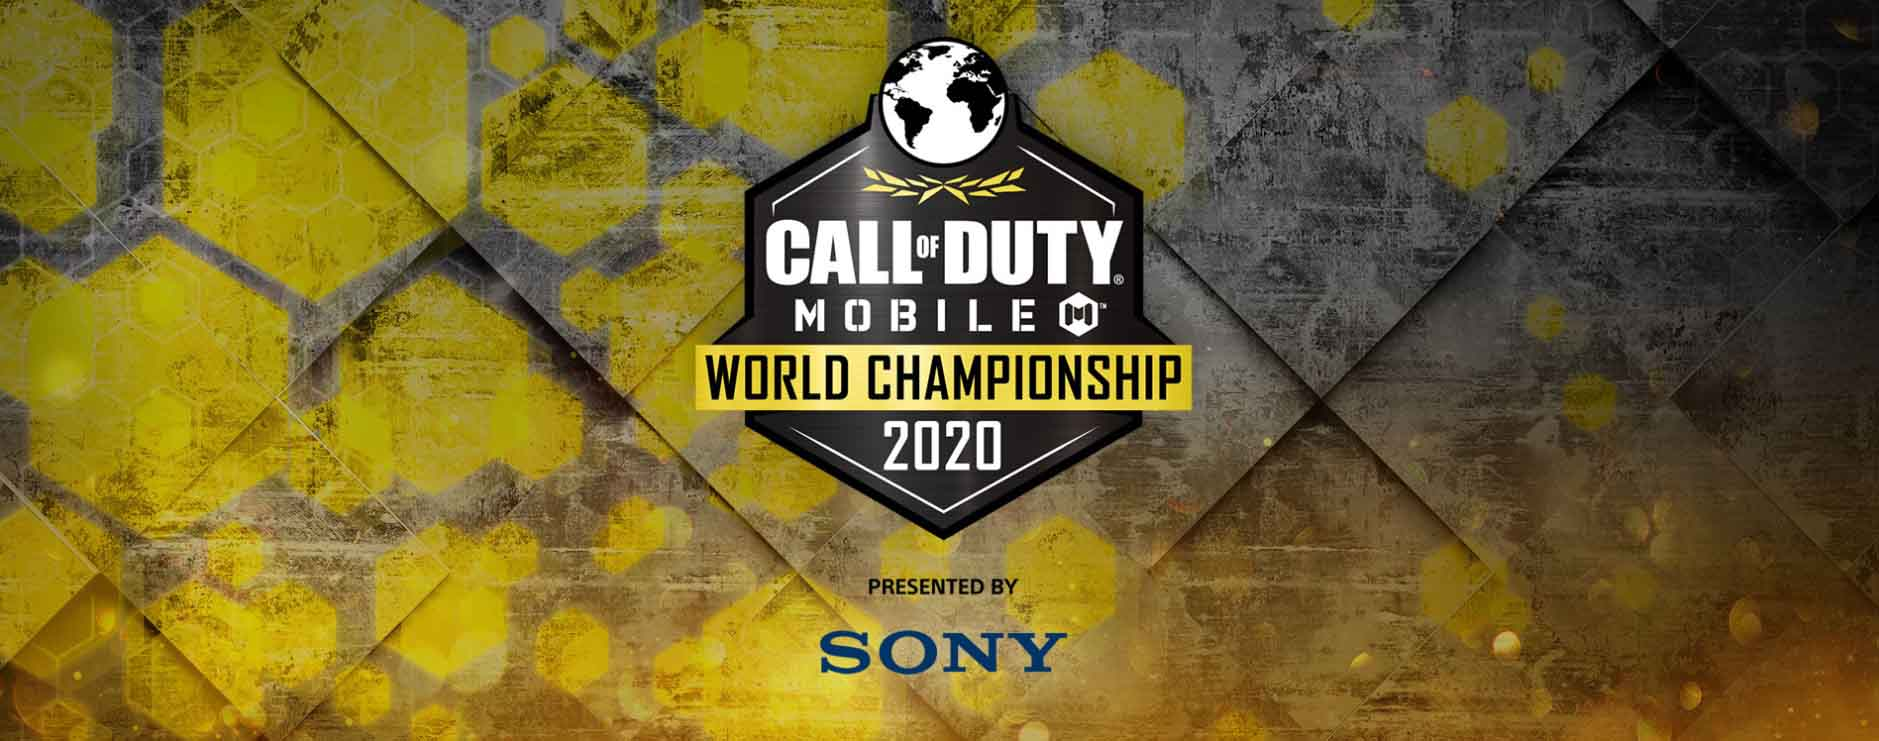 Call of Duty: Mobile World Championship 2020 Tournament